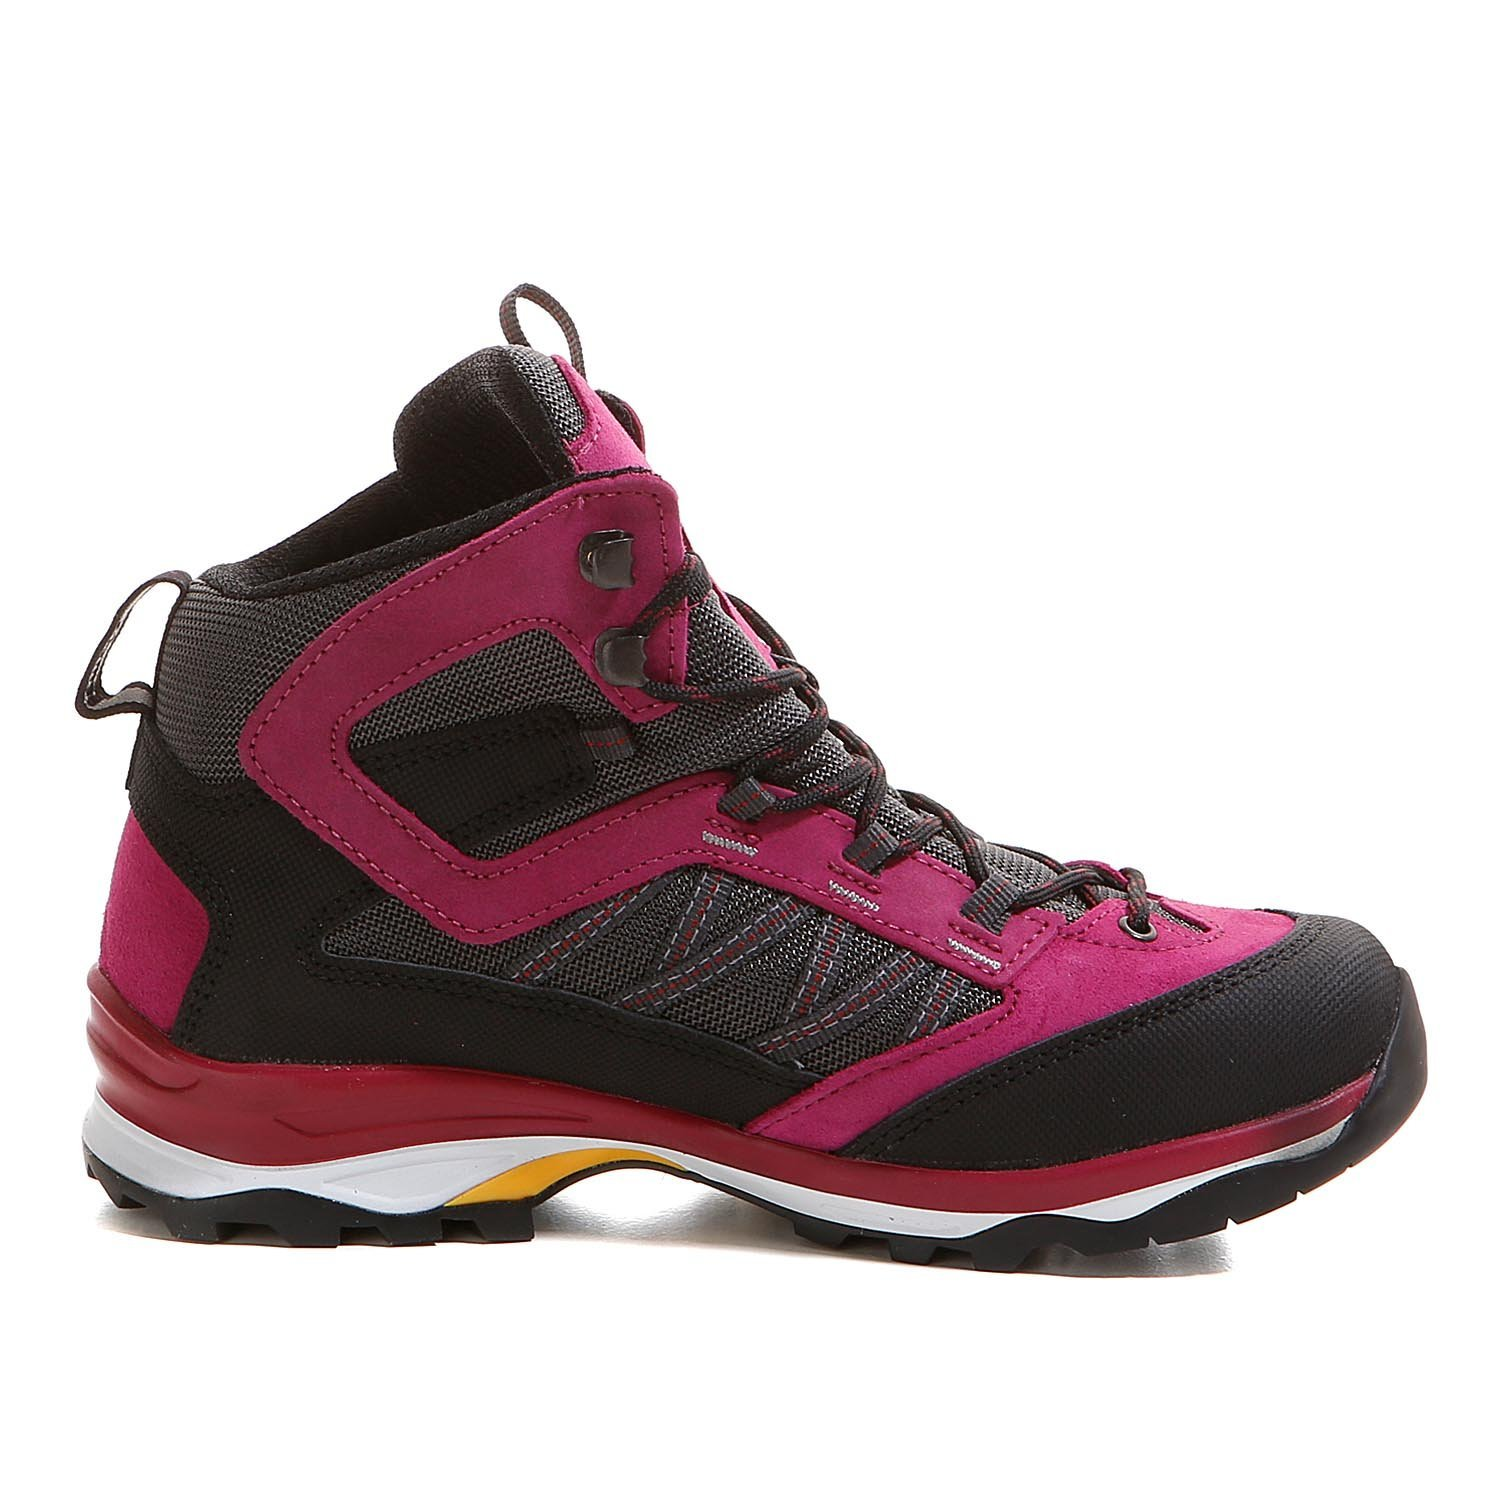 Hanwag Belorado Mid Lady GTX